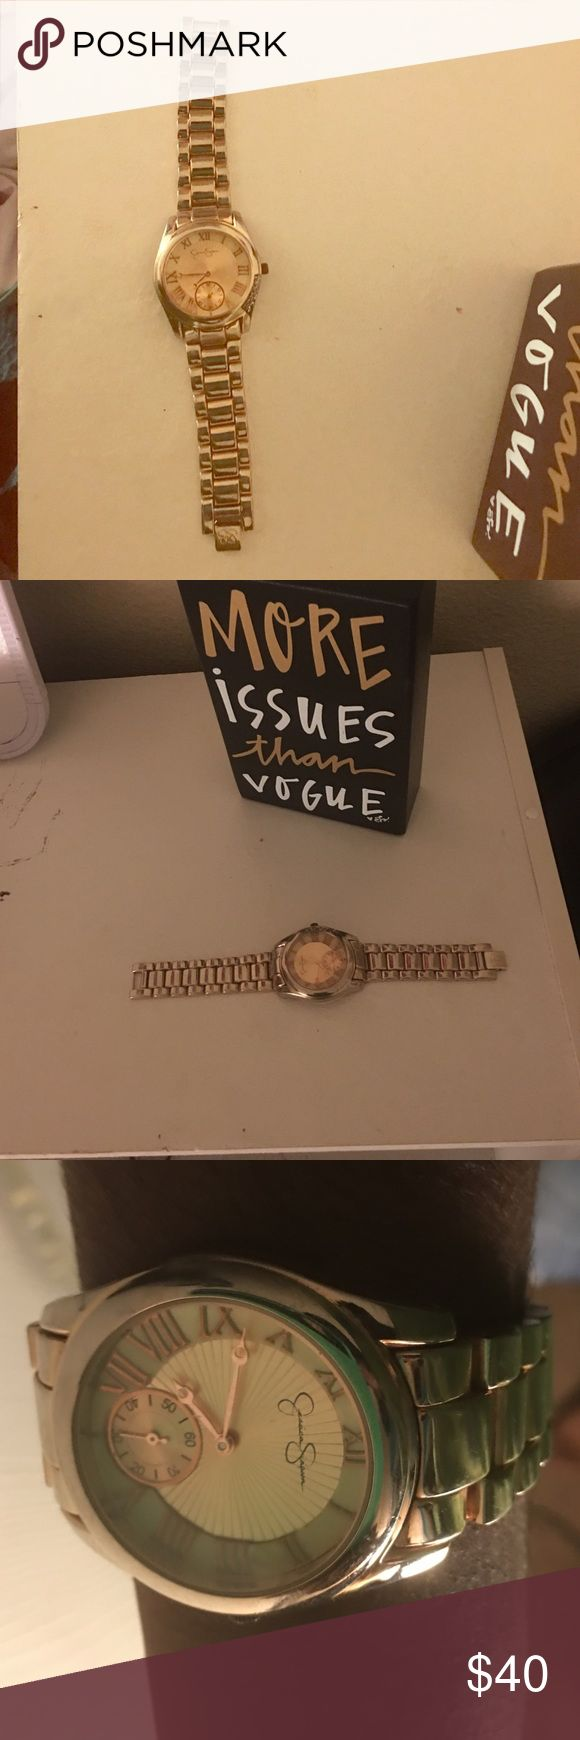 Watch Jessica Simpson gold watch. Stainless steel back. A little worn but still in very good condition. Jessica Simpson Jewelry